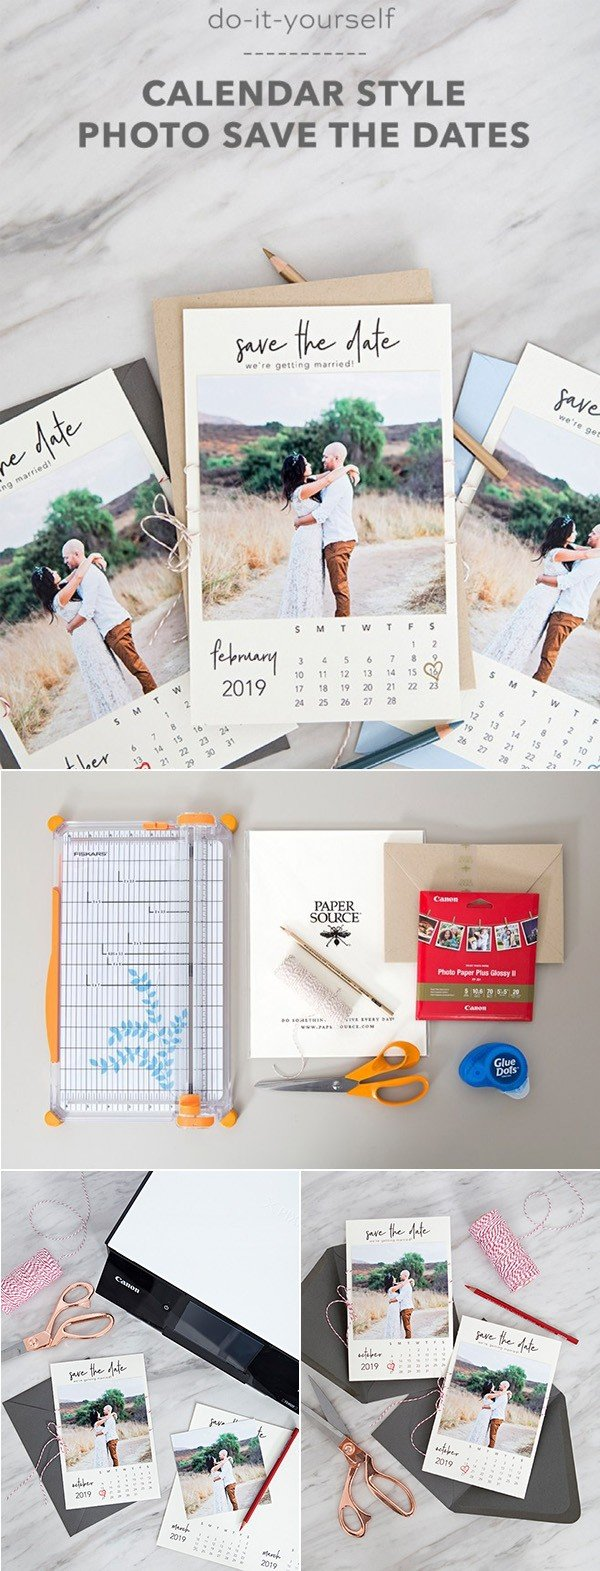 diy calendar style photo save the date for 2018 wedding